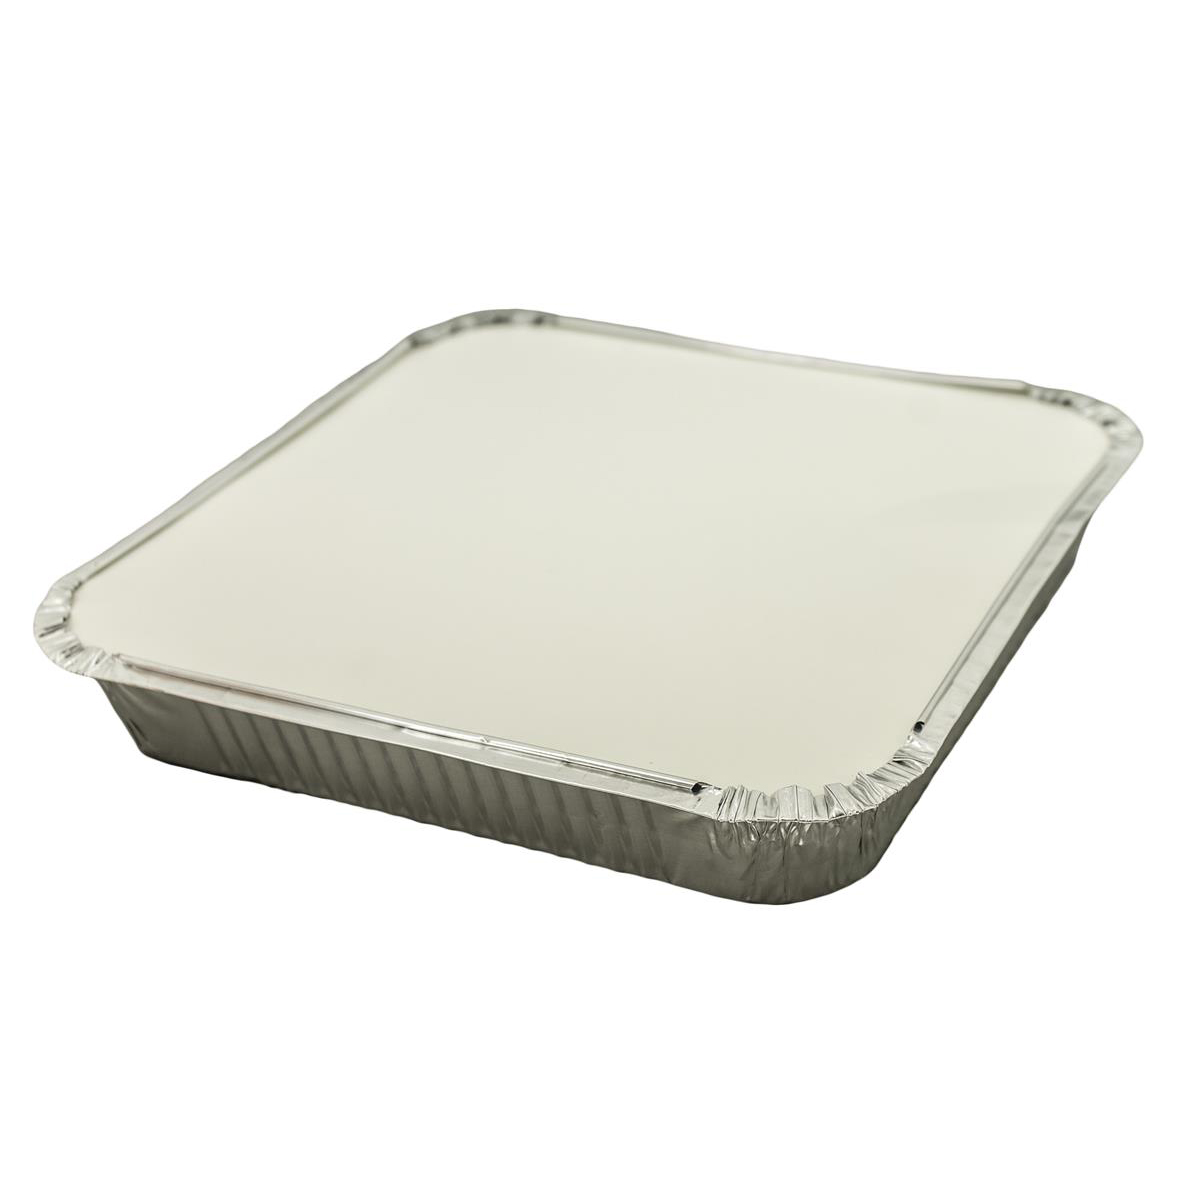 Caterpack Foil Food Container with Lid W230xD230mm Ref 03882 [Pack 10]